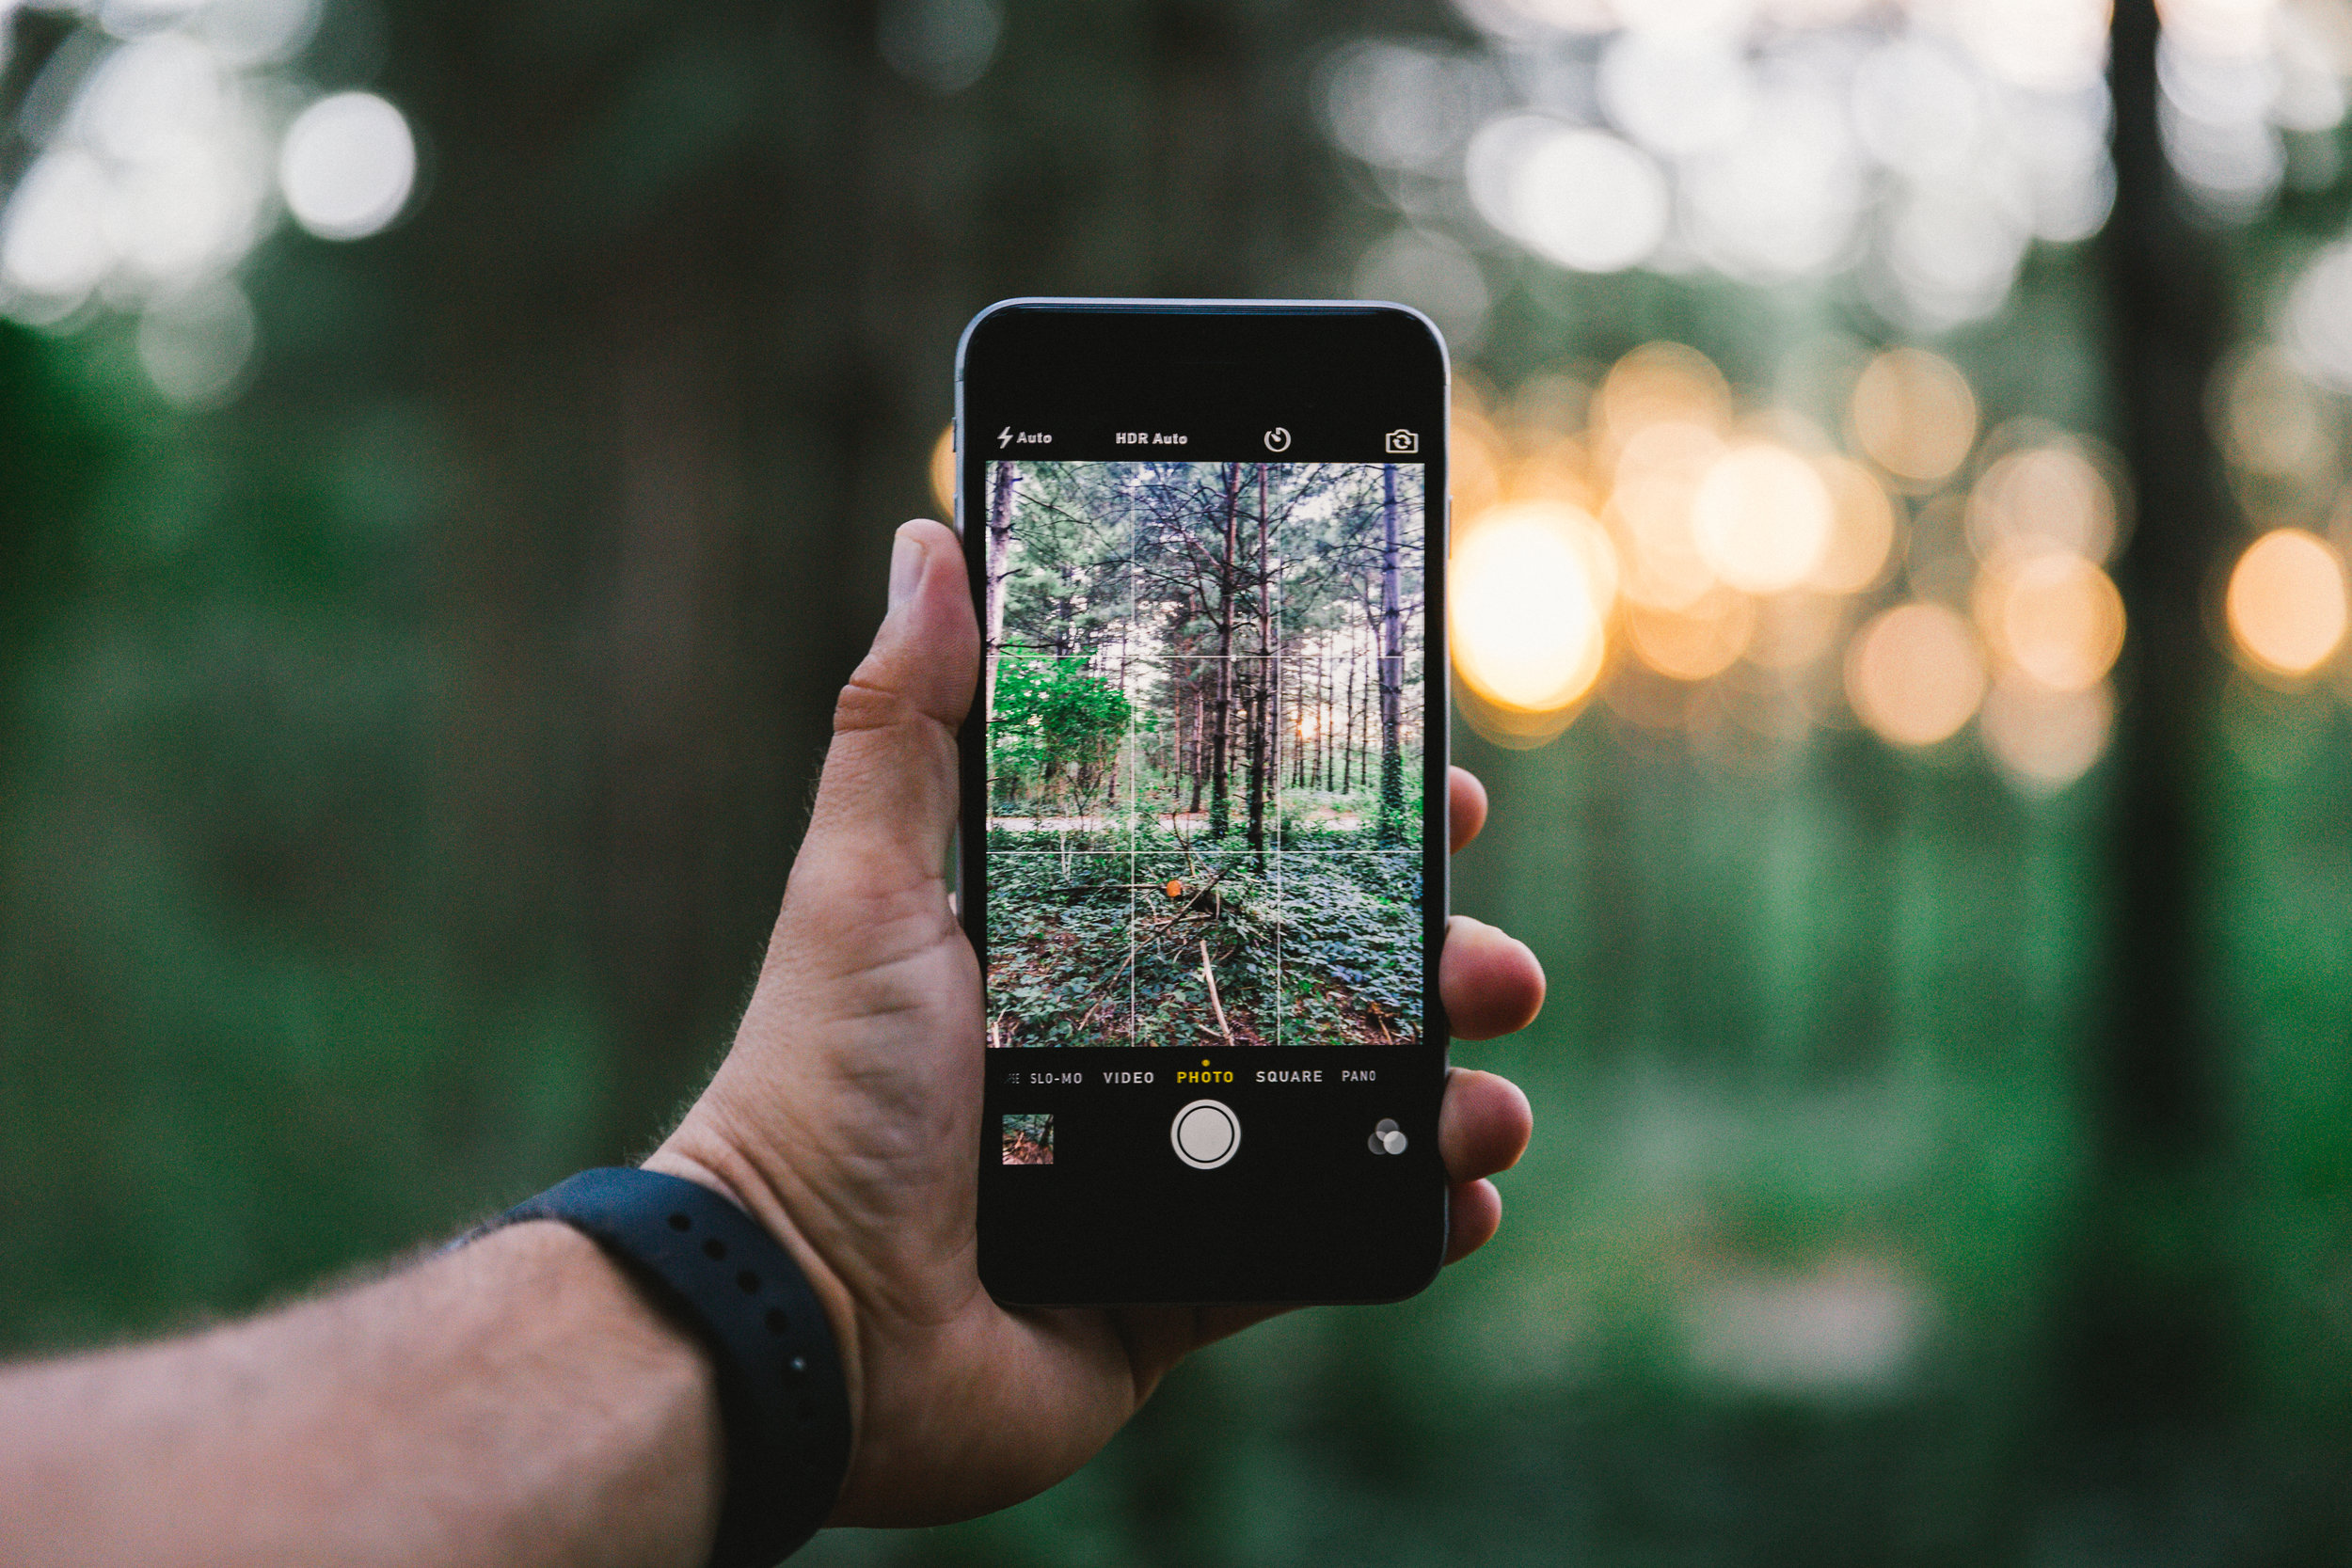 Dial Up Nature - The Wireless Wilderness self-guided tour engage children and adults alike. The dynamic expedition through park sites brings together photos, videos, bird calls and more, right on your smart phone.